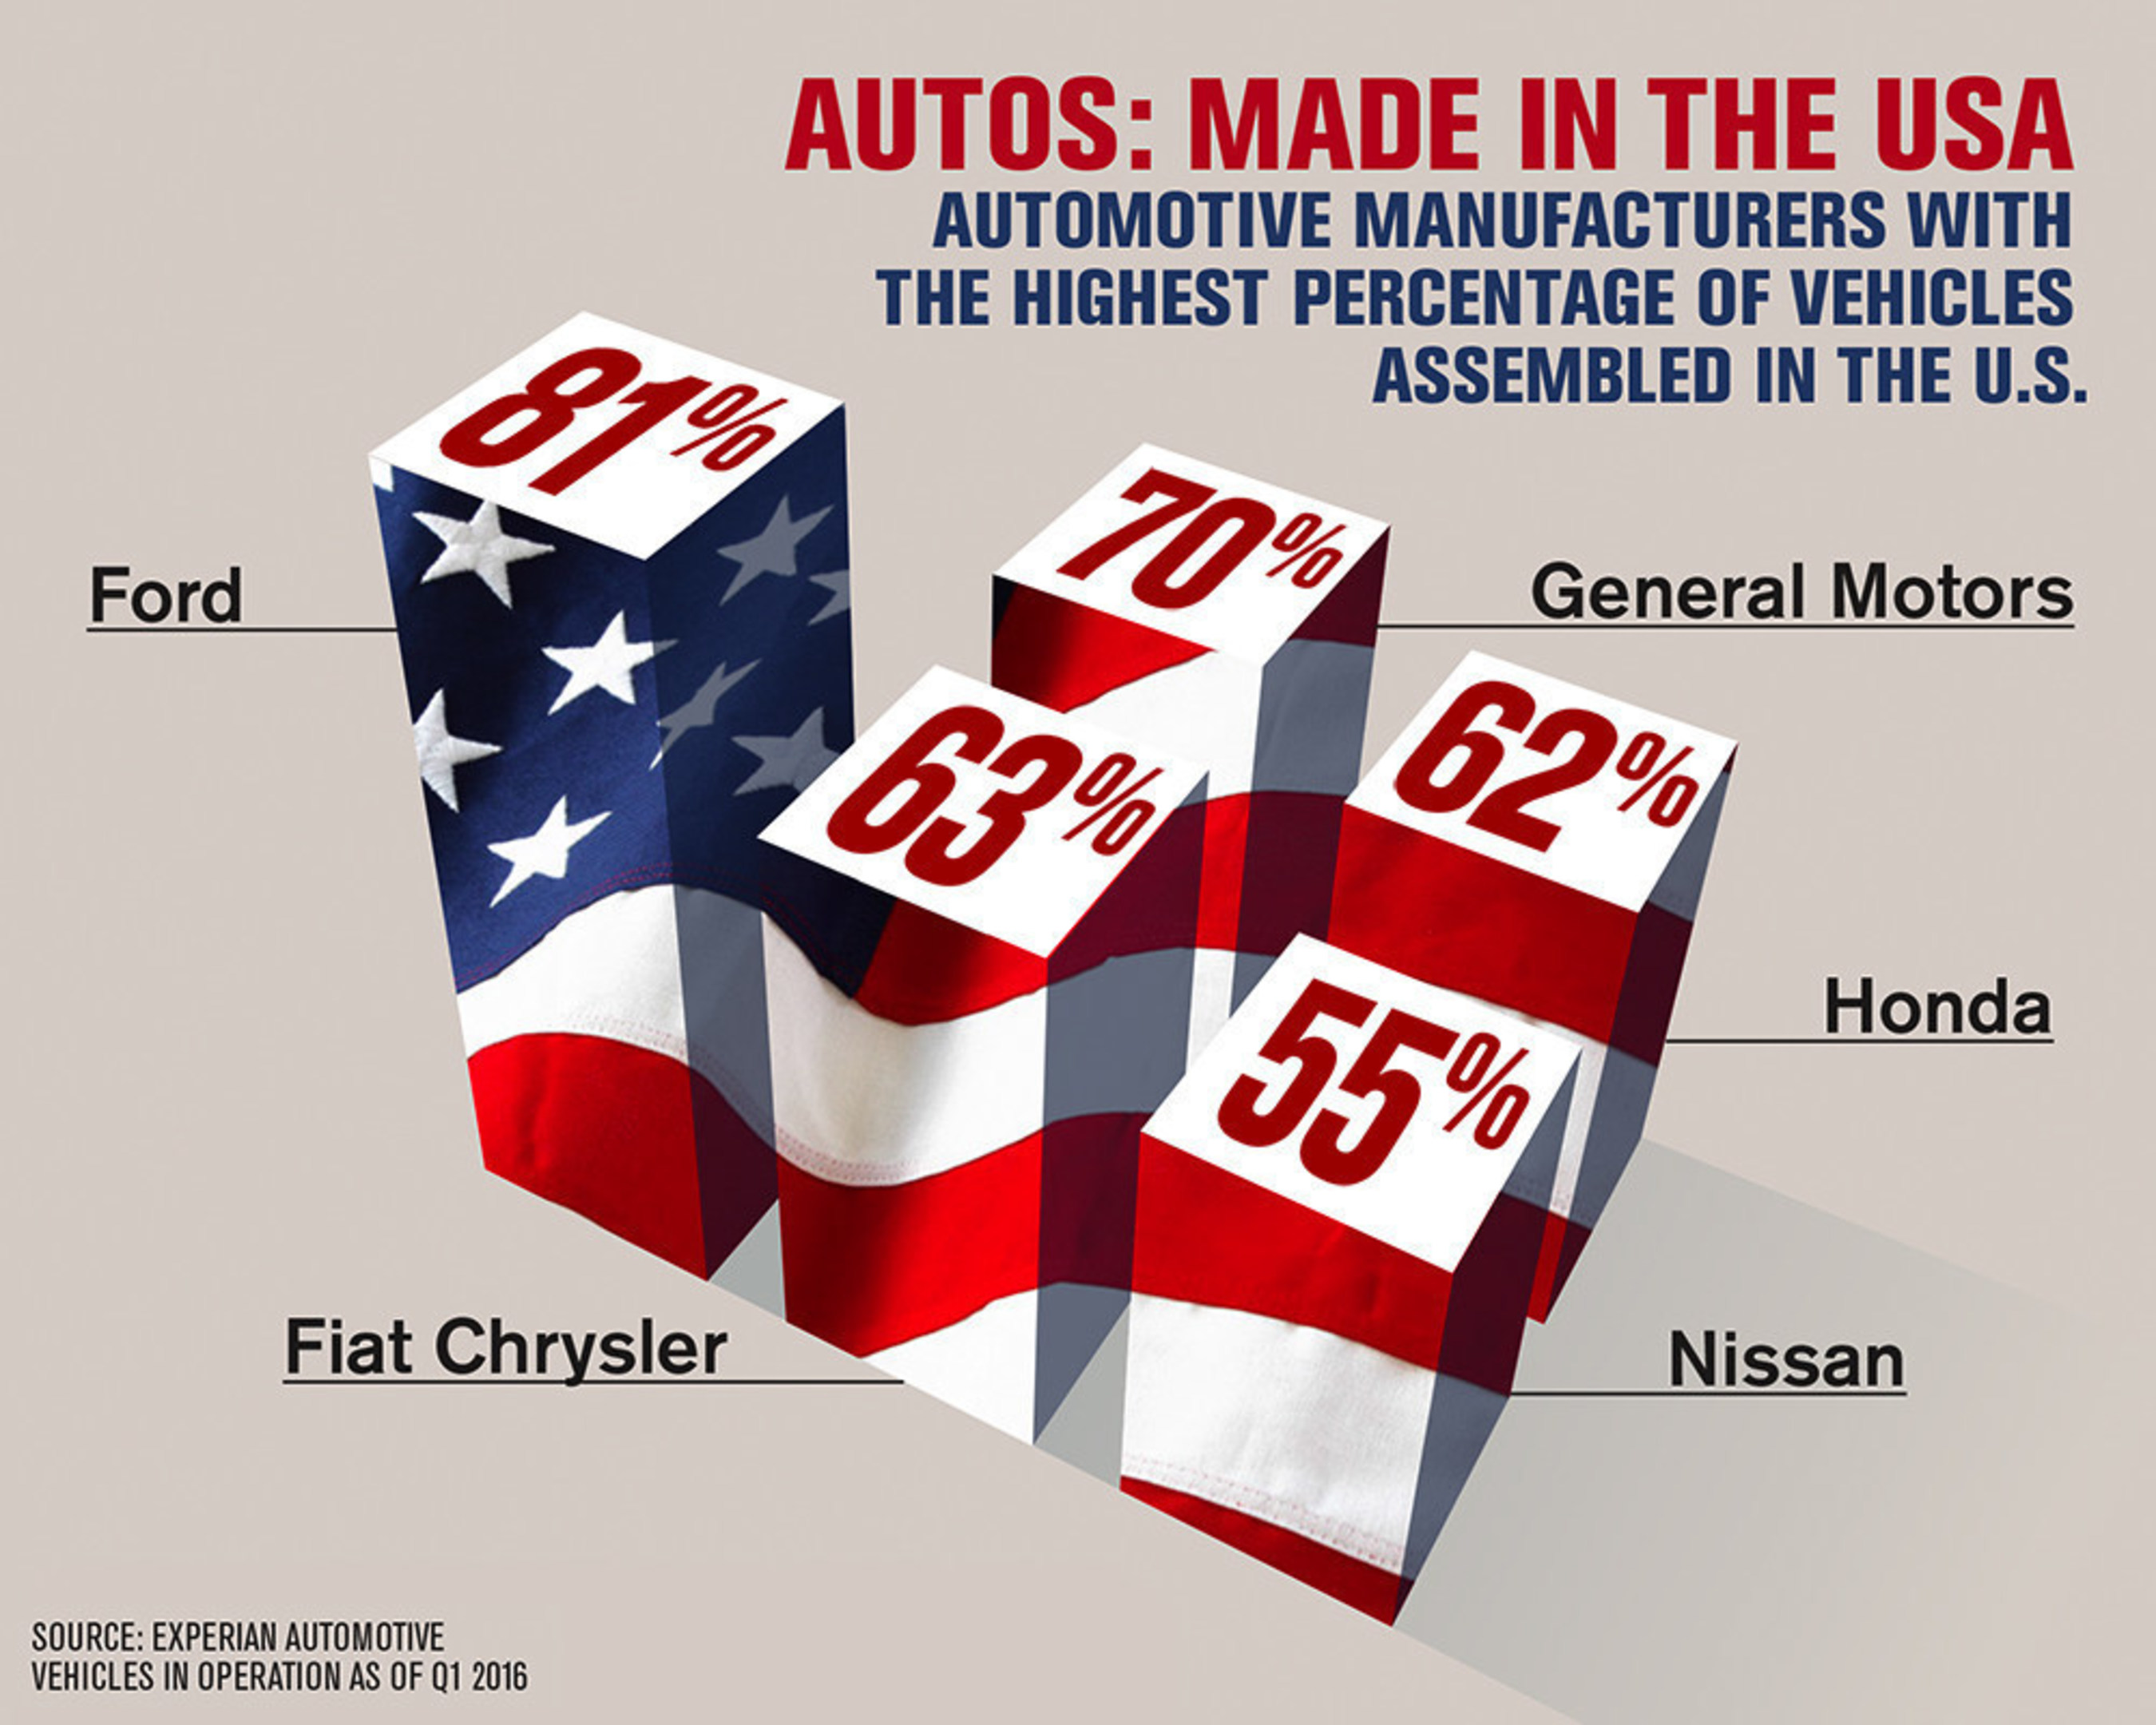 Autos Made In The USA